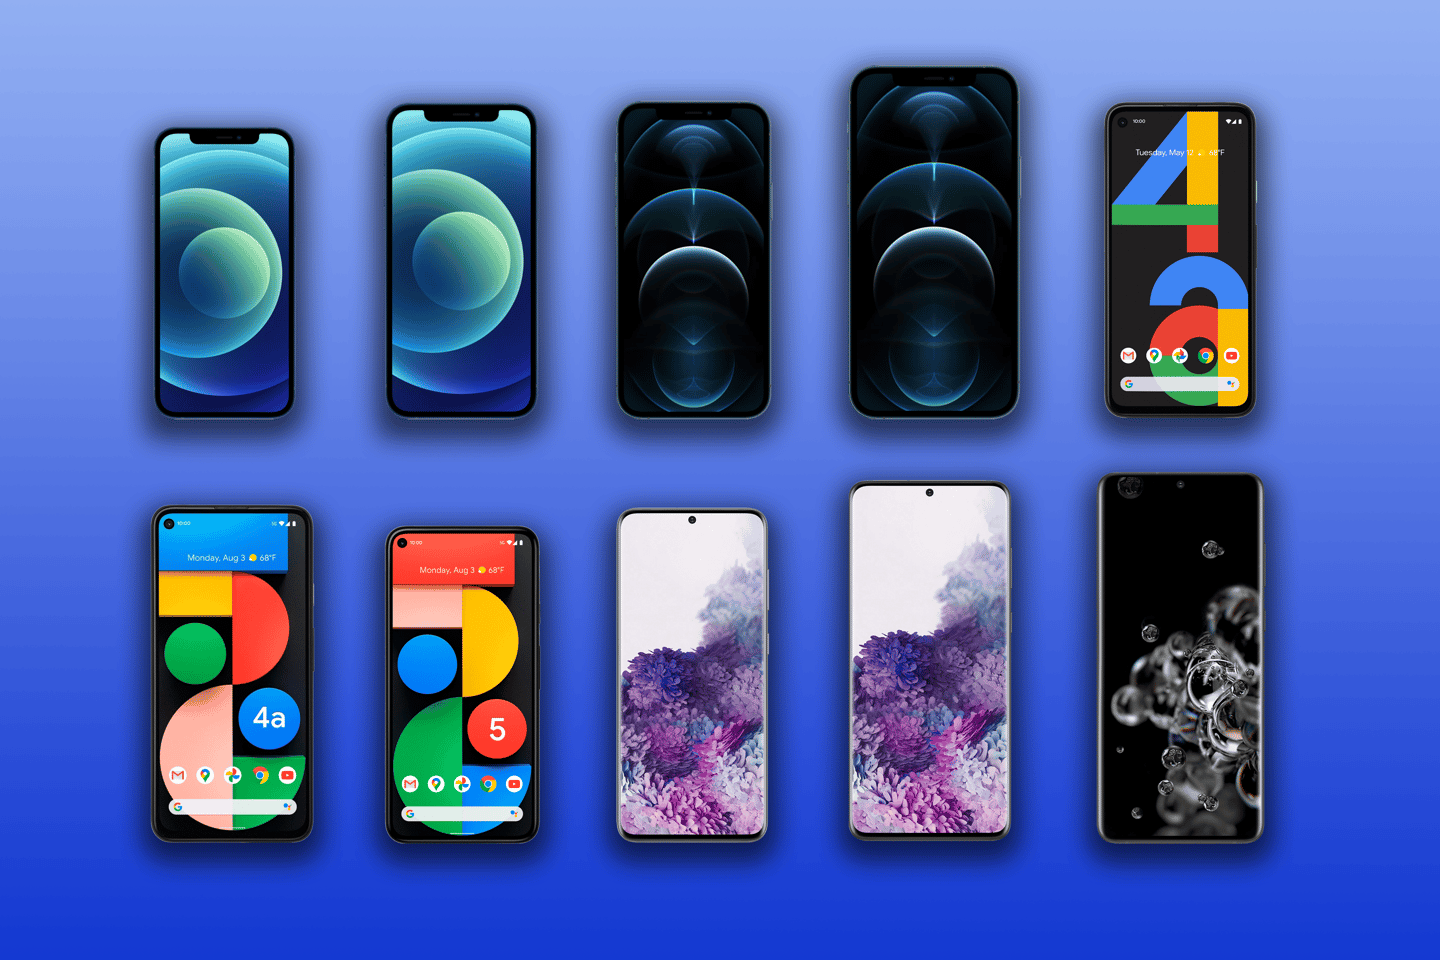 New Atlas compares the specs and features of 2020's biggest phones, including the iPhone 12 mini, iPhone 12, Pro and Pro Max, the Pixel 4a, Pixel 4a 5G and Pixel 5, and the Galaxy S20, S20+ and S20 Ultra